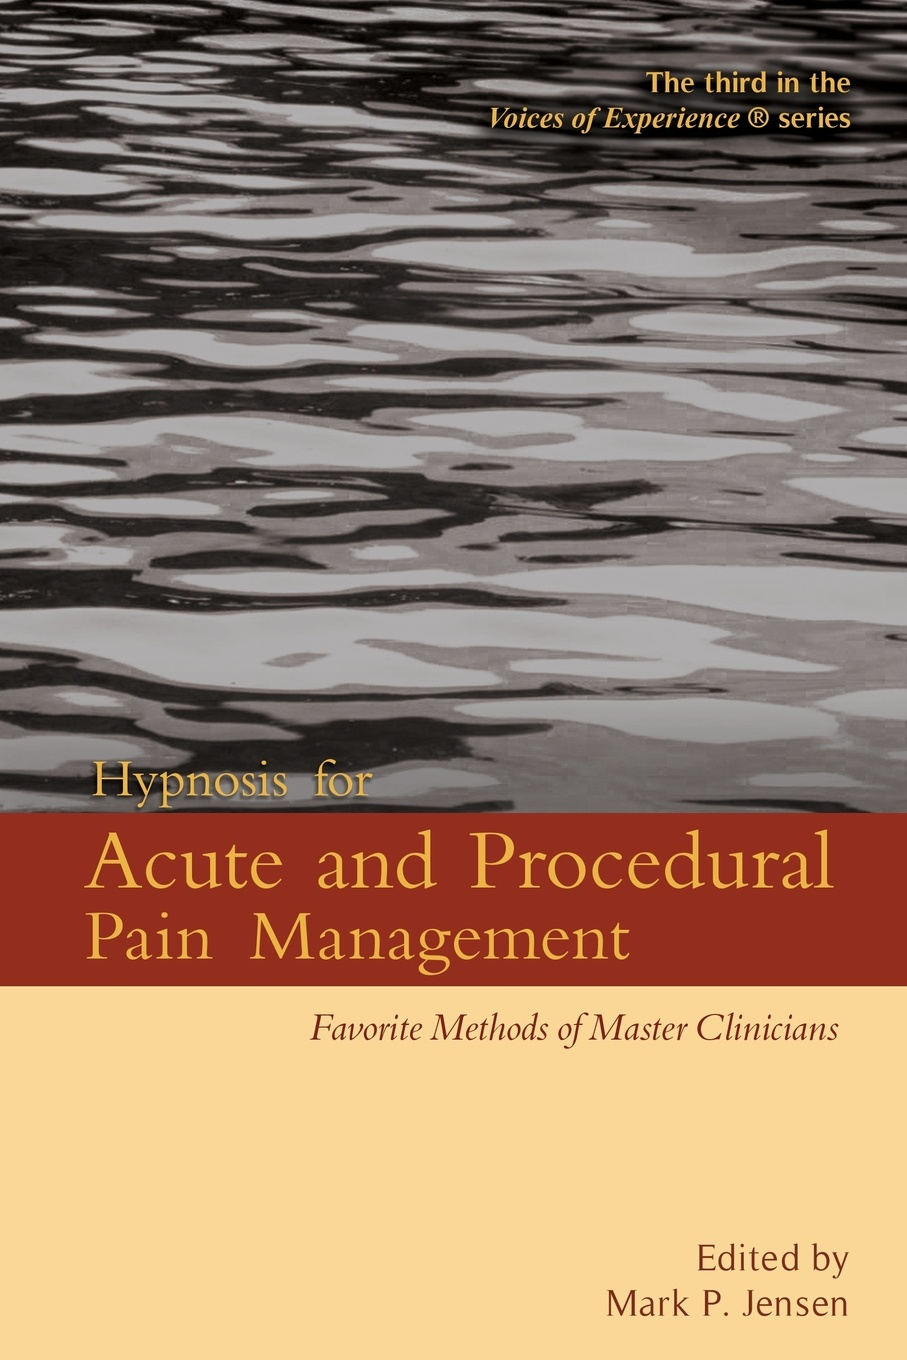 Hypnosis for Acute and Procedural Pain Management. Favorite Methods of Master Clinicians